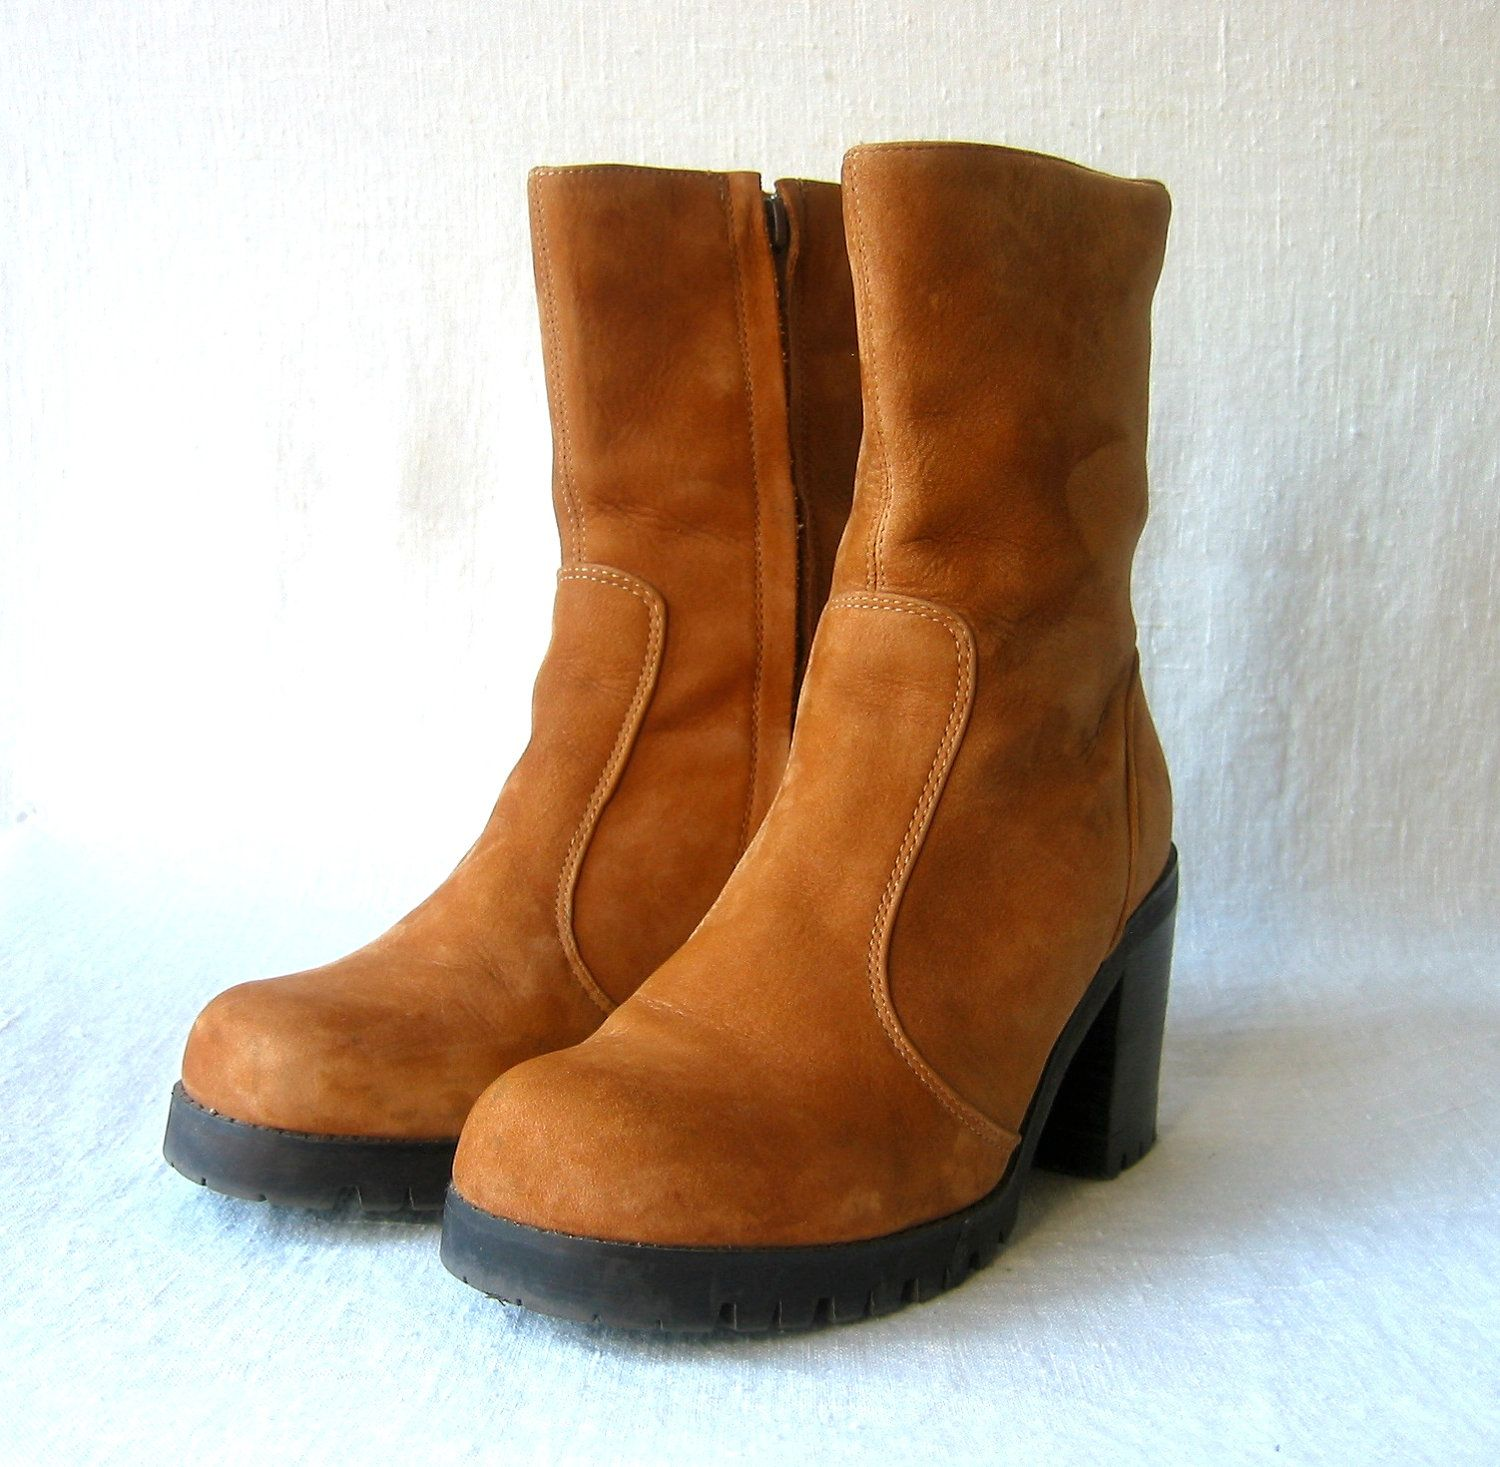 vintage boots blonde suede   GazeboTree on Etsy